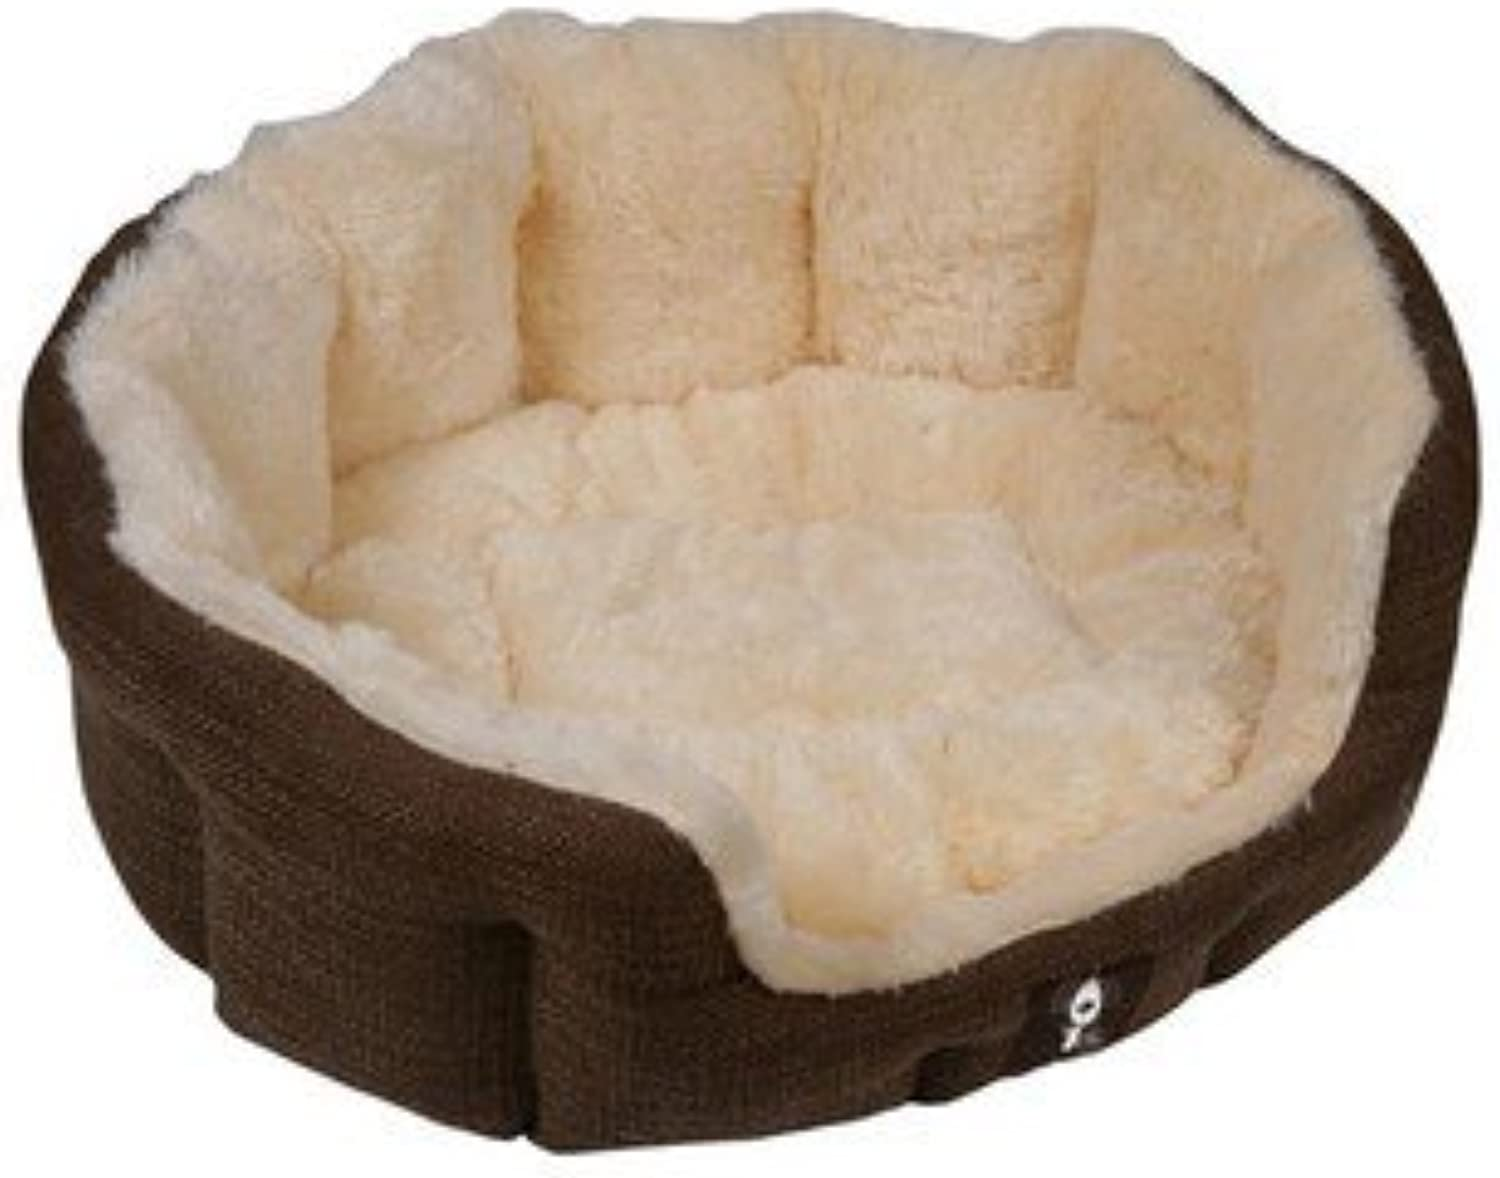 PetEssentials Yap Semmula Heavy Duty Brown Oval Dog Bed (EcoFriendly Packaging) 22 INCH